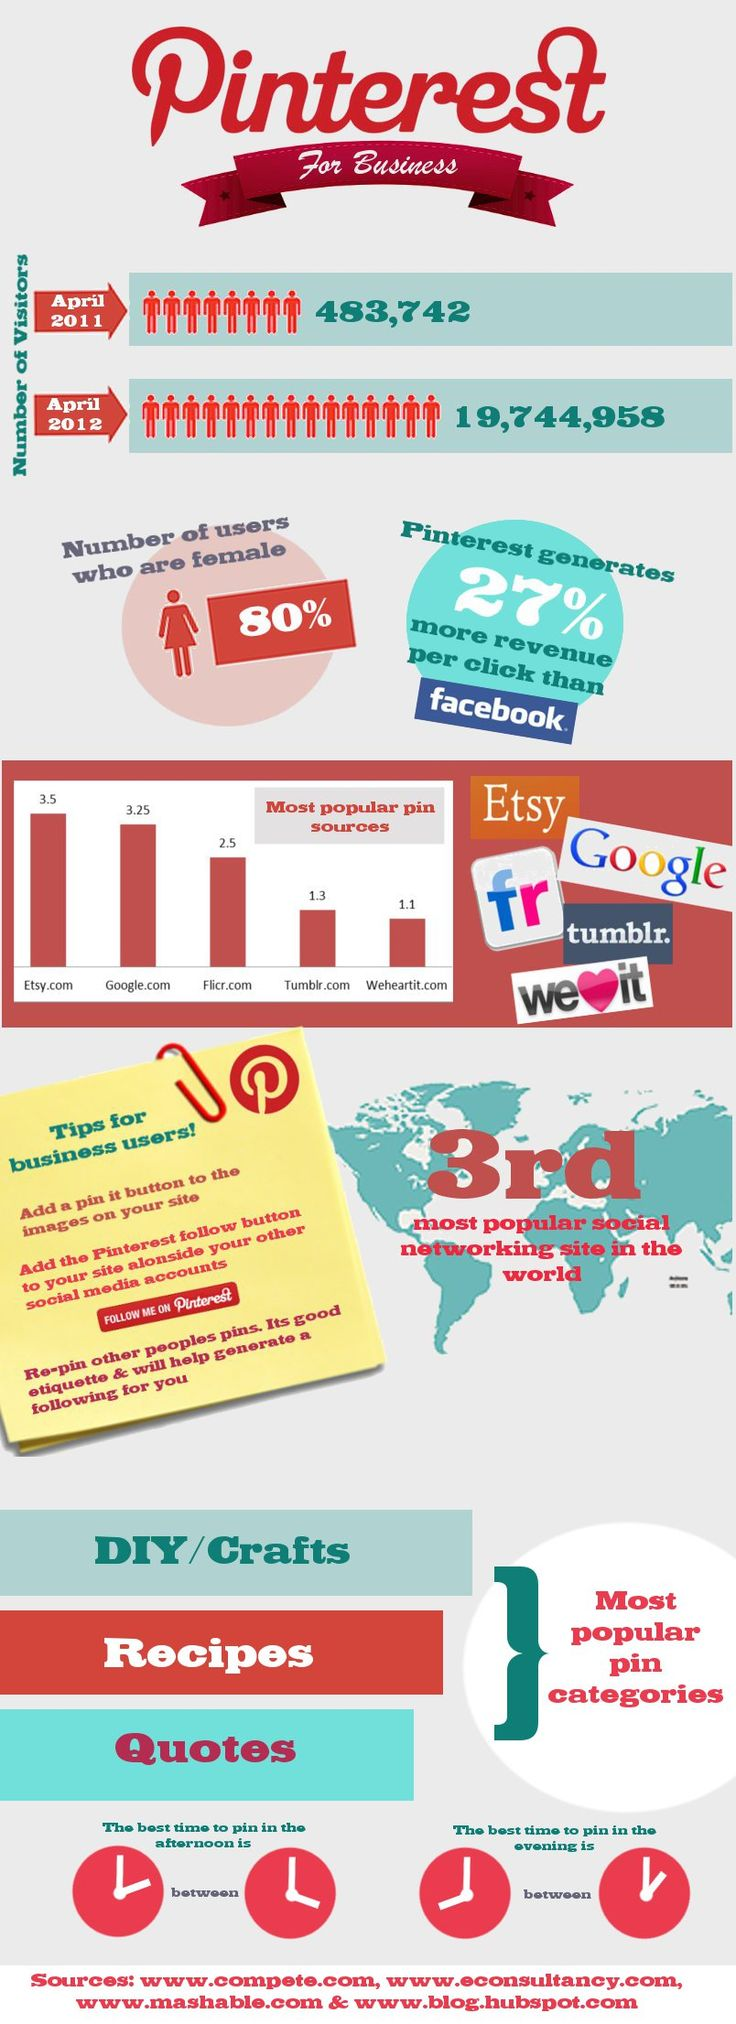 Best Time to Pin #Infographic